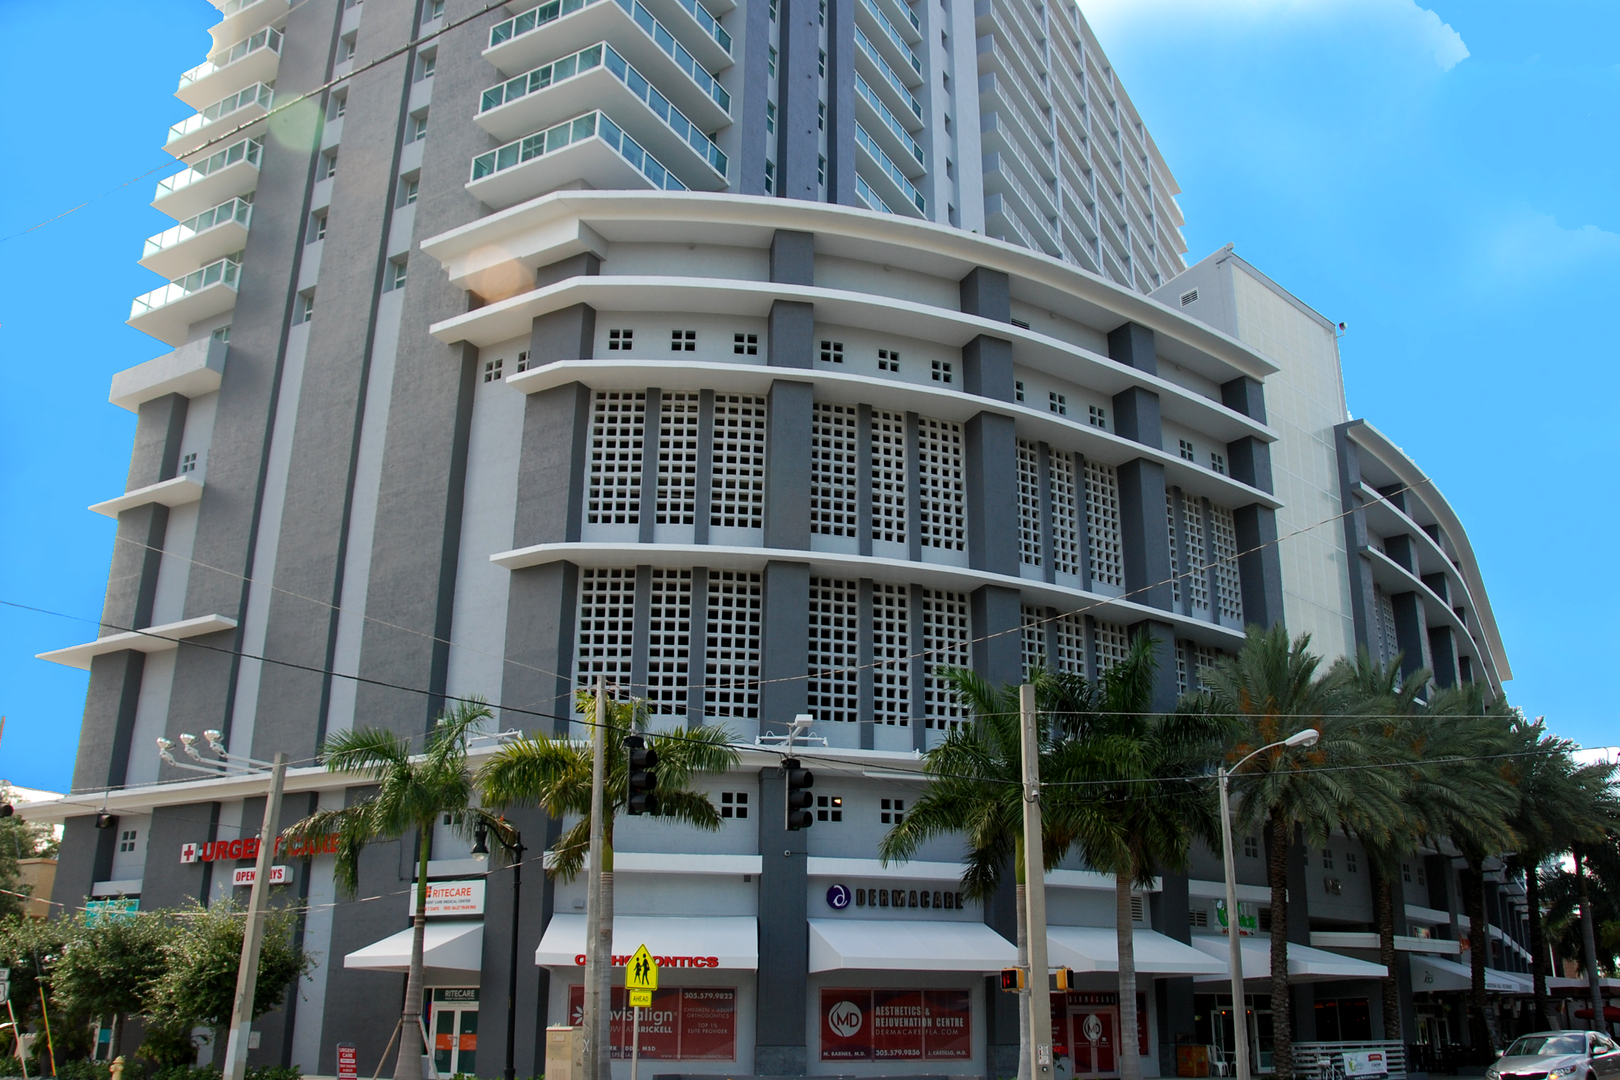 PROJECT NAME: BRICKELL VEU